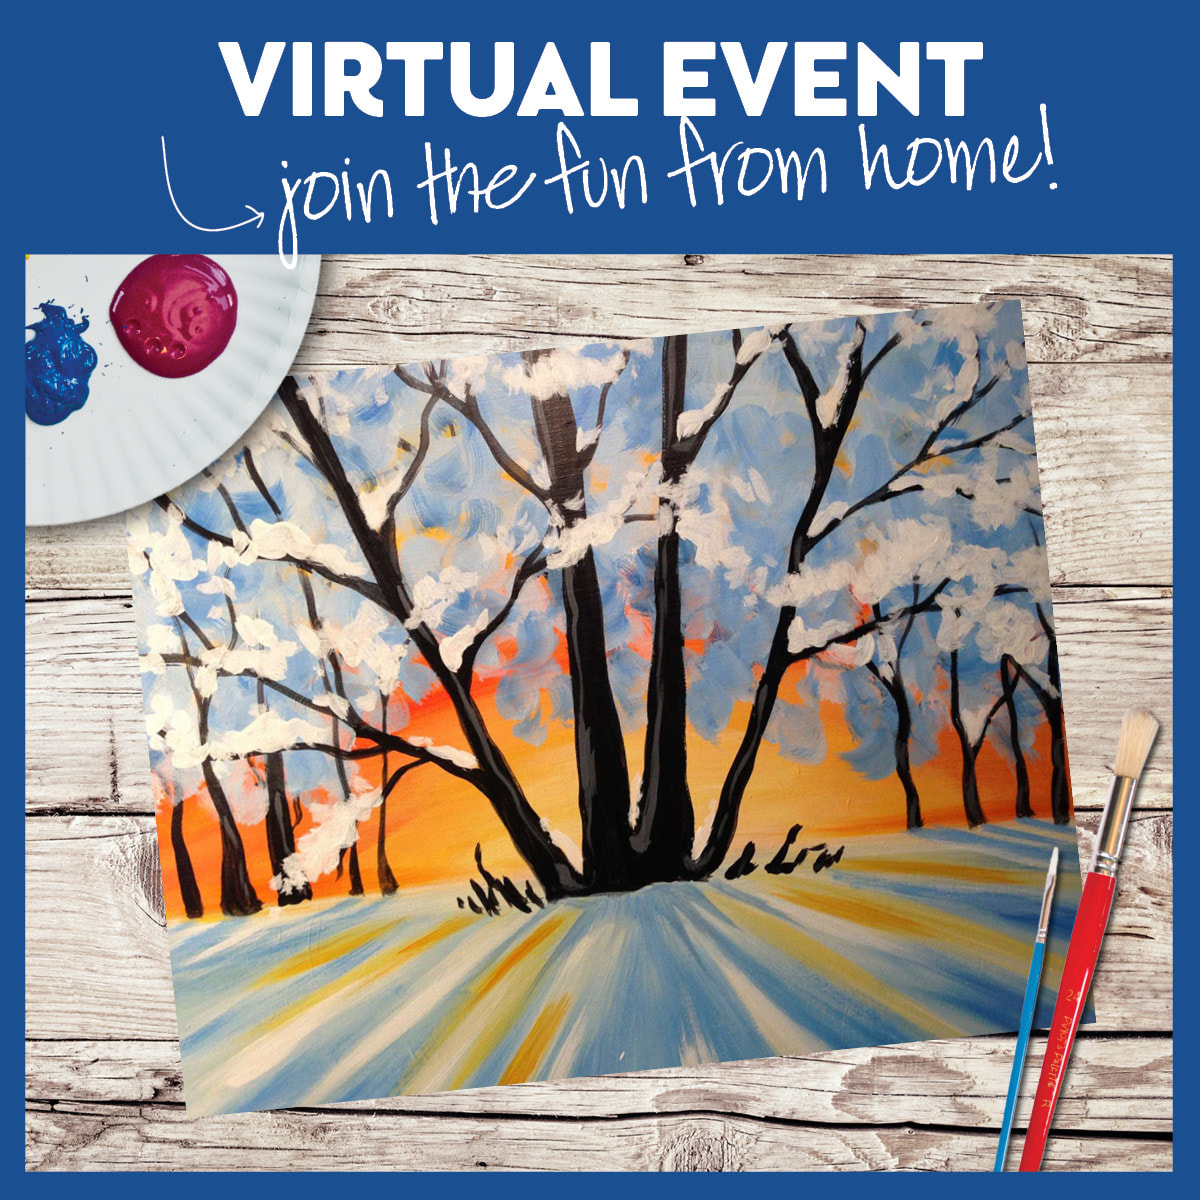 LIVE INTERACTIVE VIRTUAL CLASS. - PAINTING KIT INCLUDED